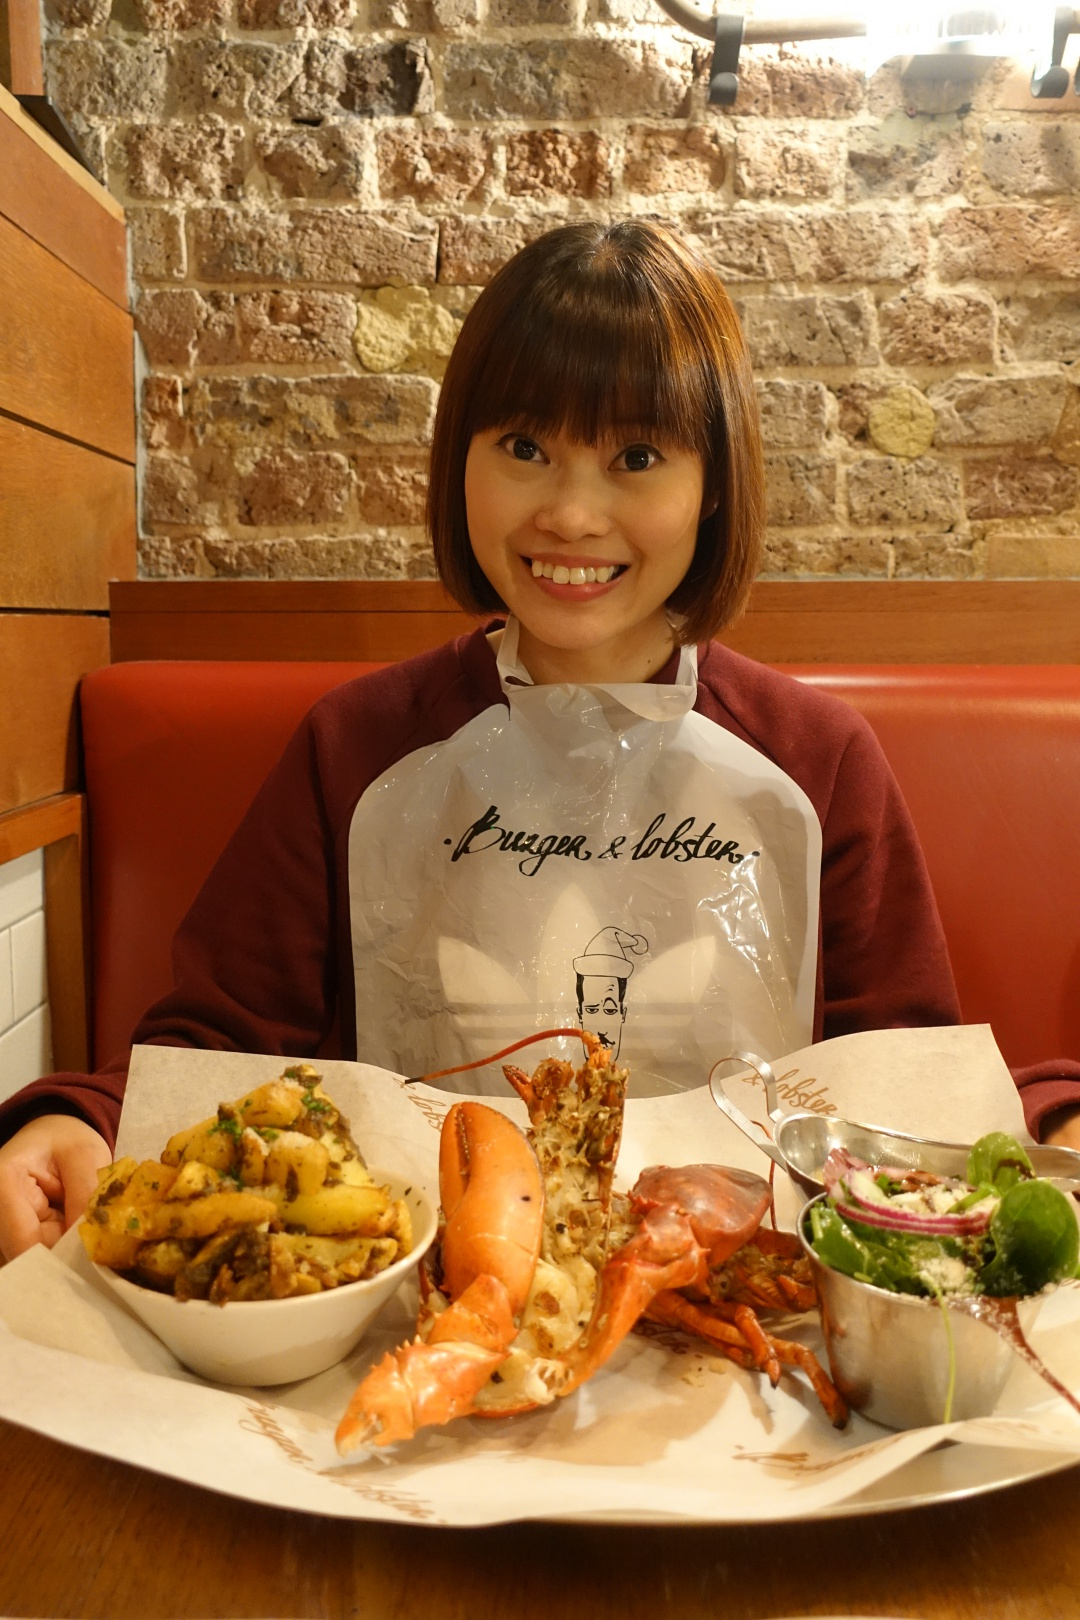 London Burger & Lobster | joanne-khoo.com